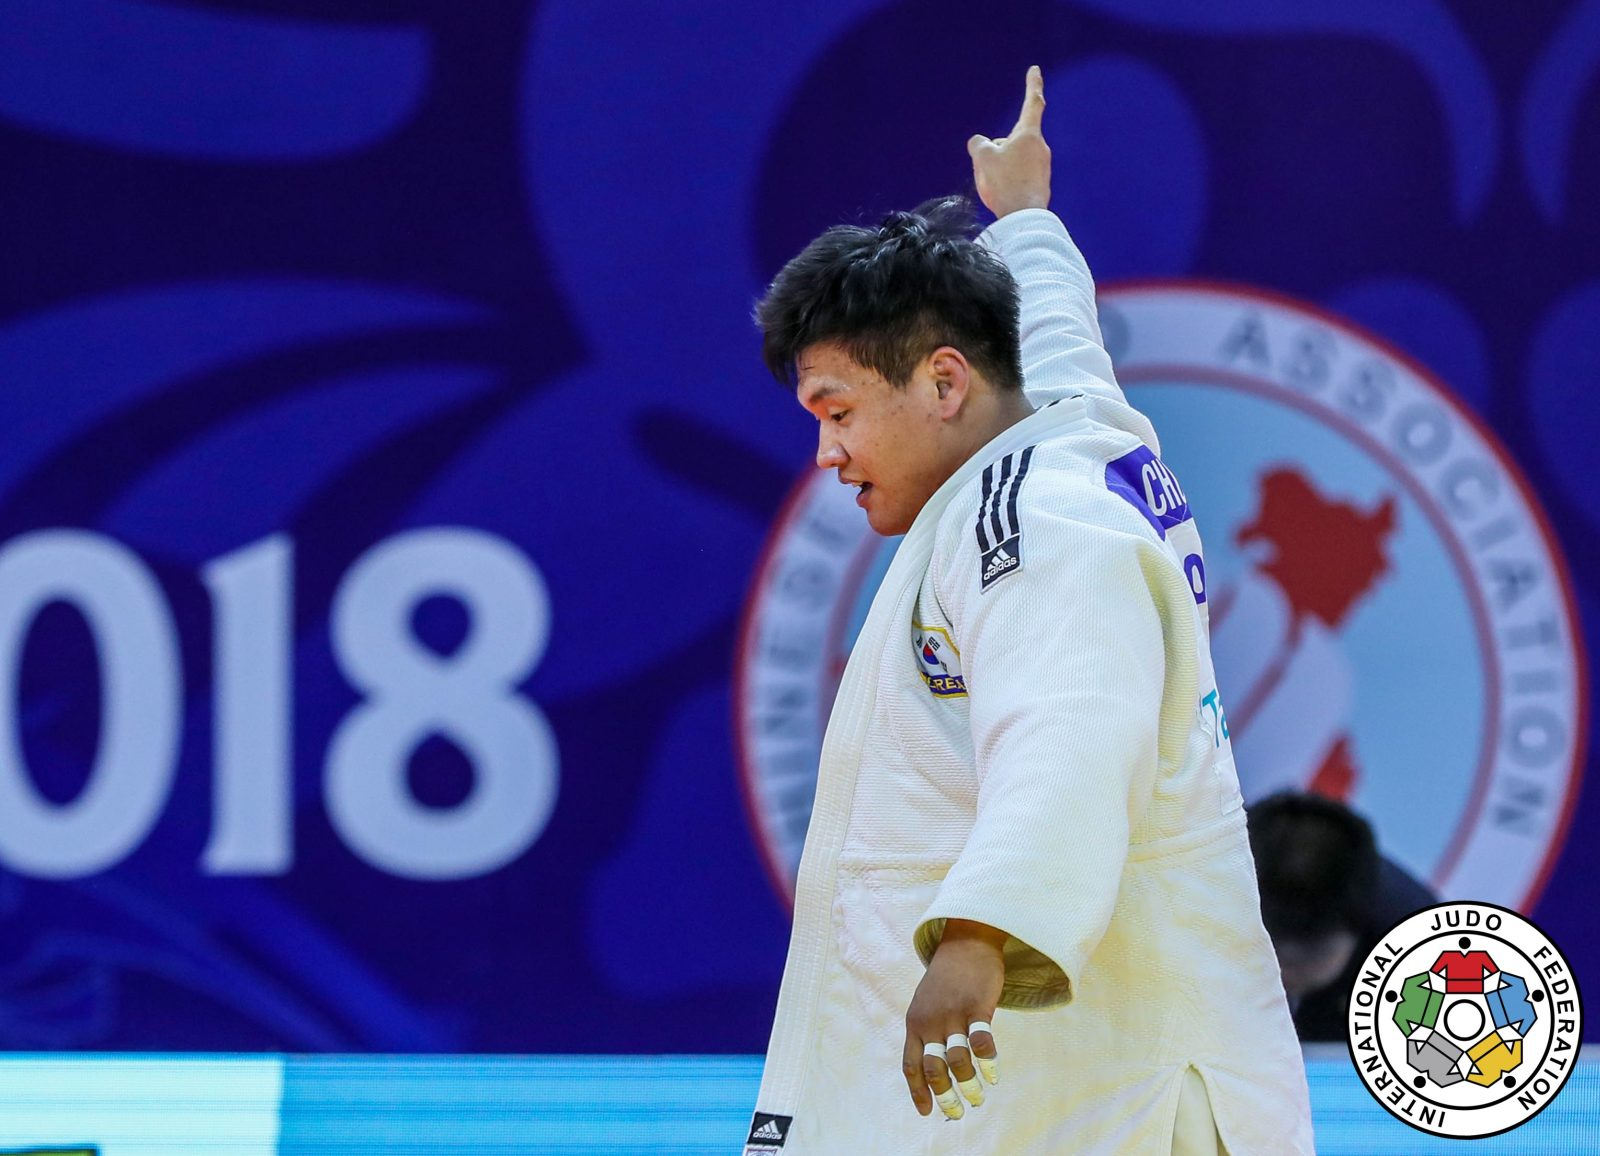 20180527_hohhotgp_ijf_day3_final_100_cho_guham_win